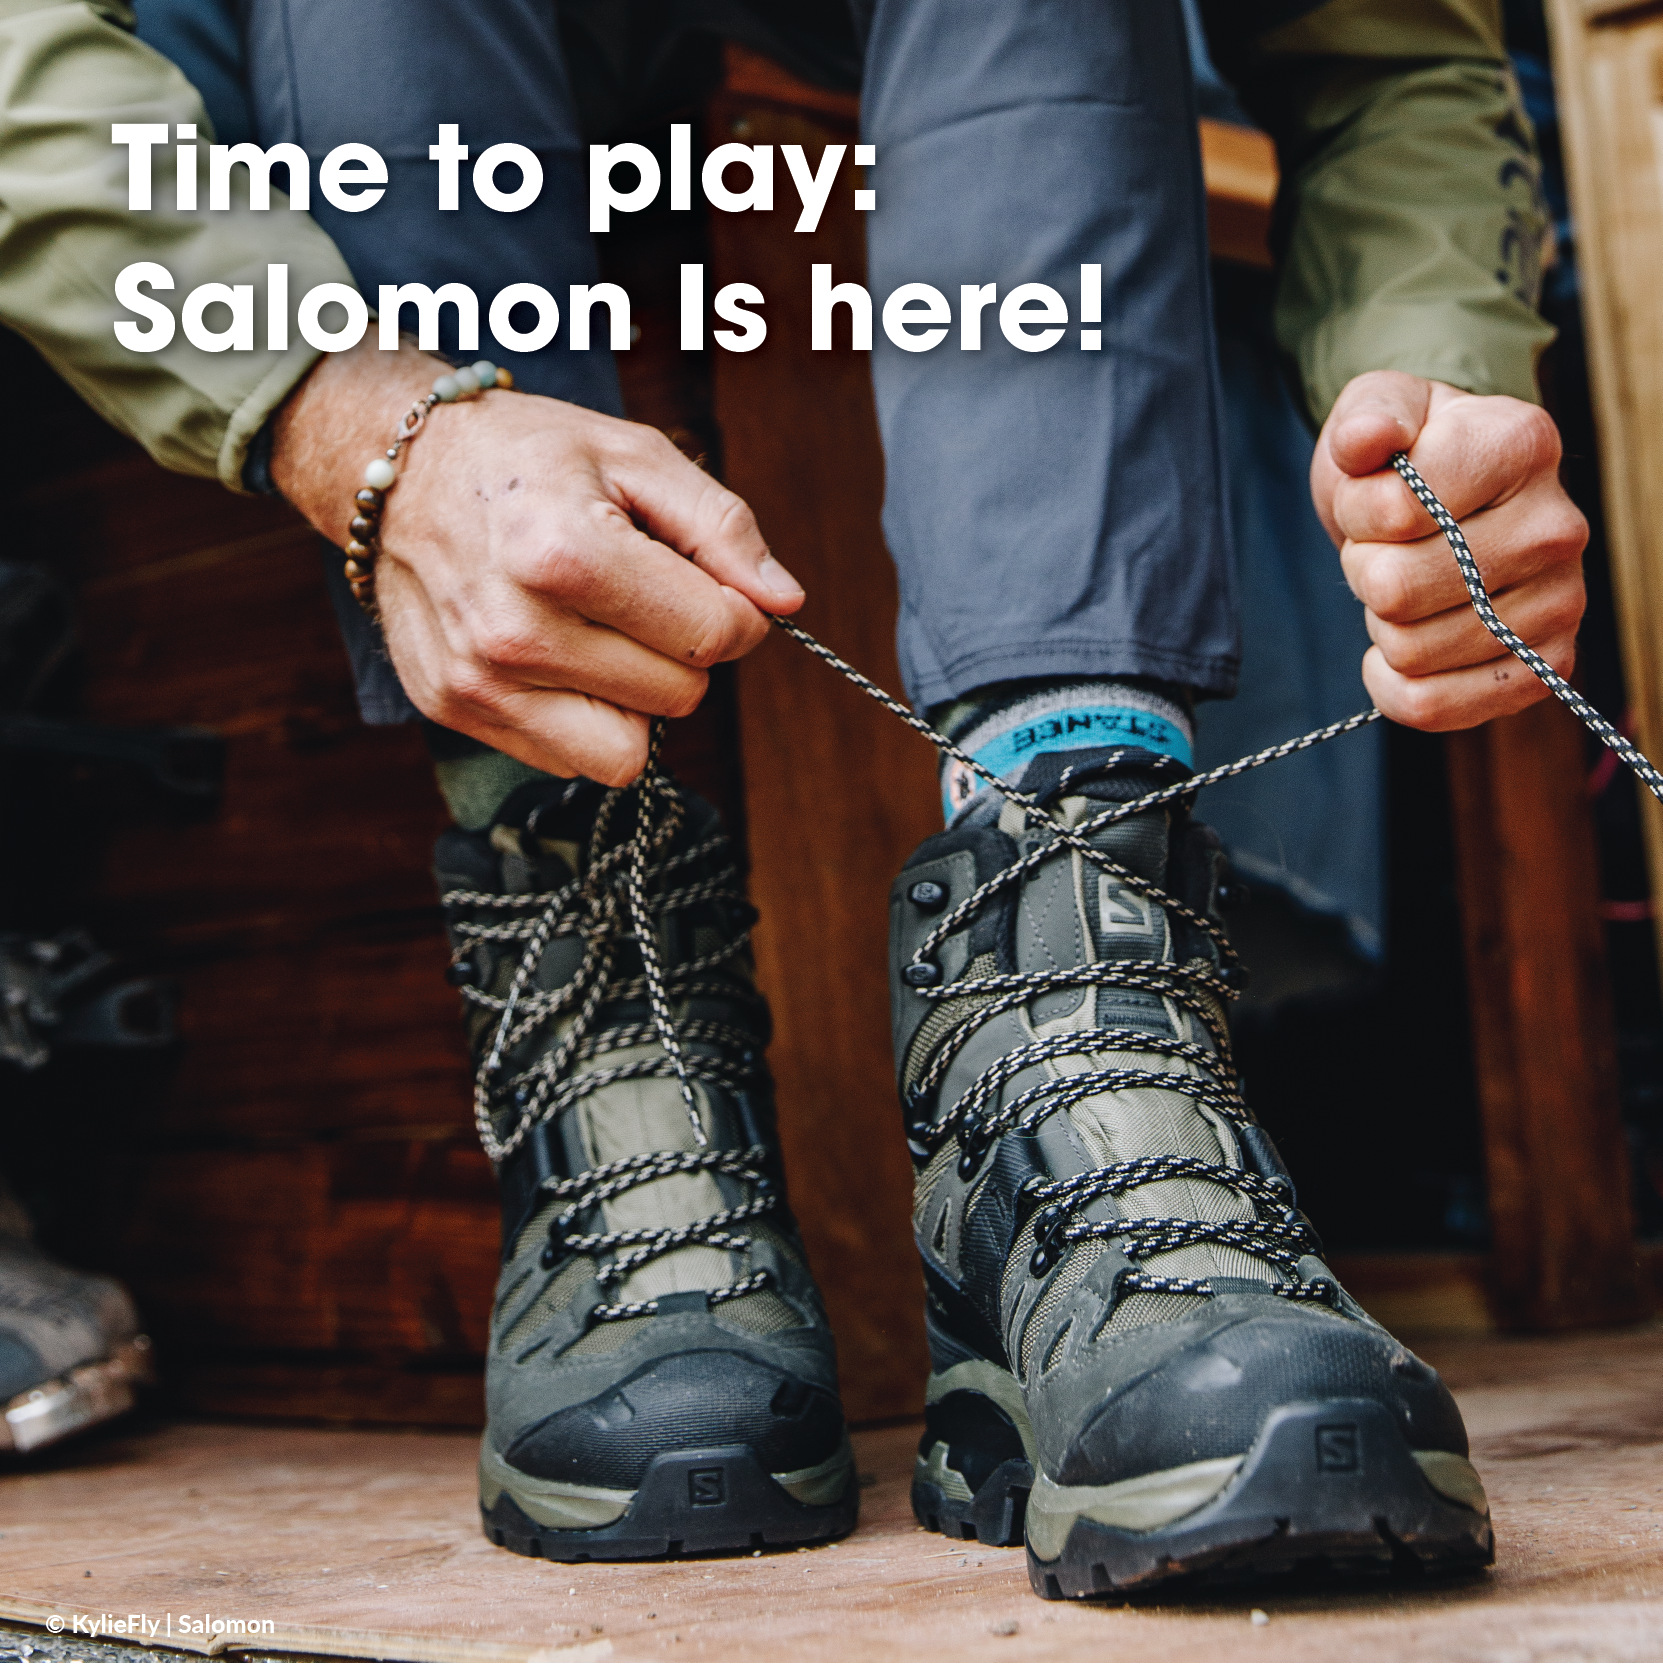 Time to Play: Salomon Is Here